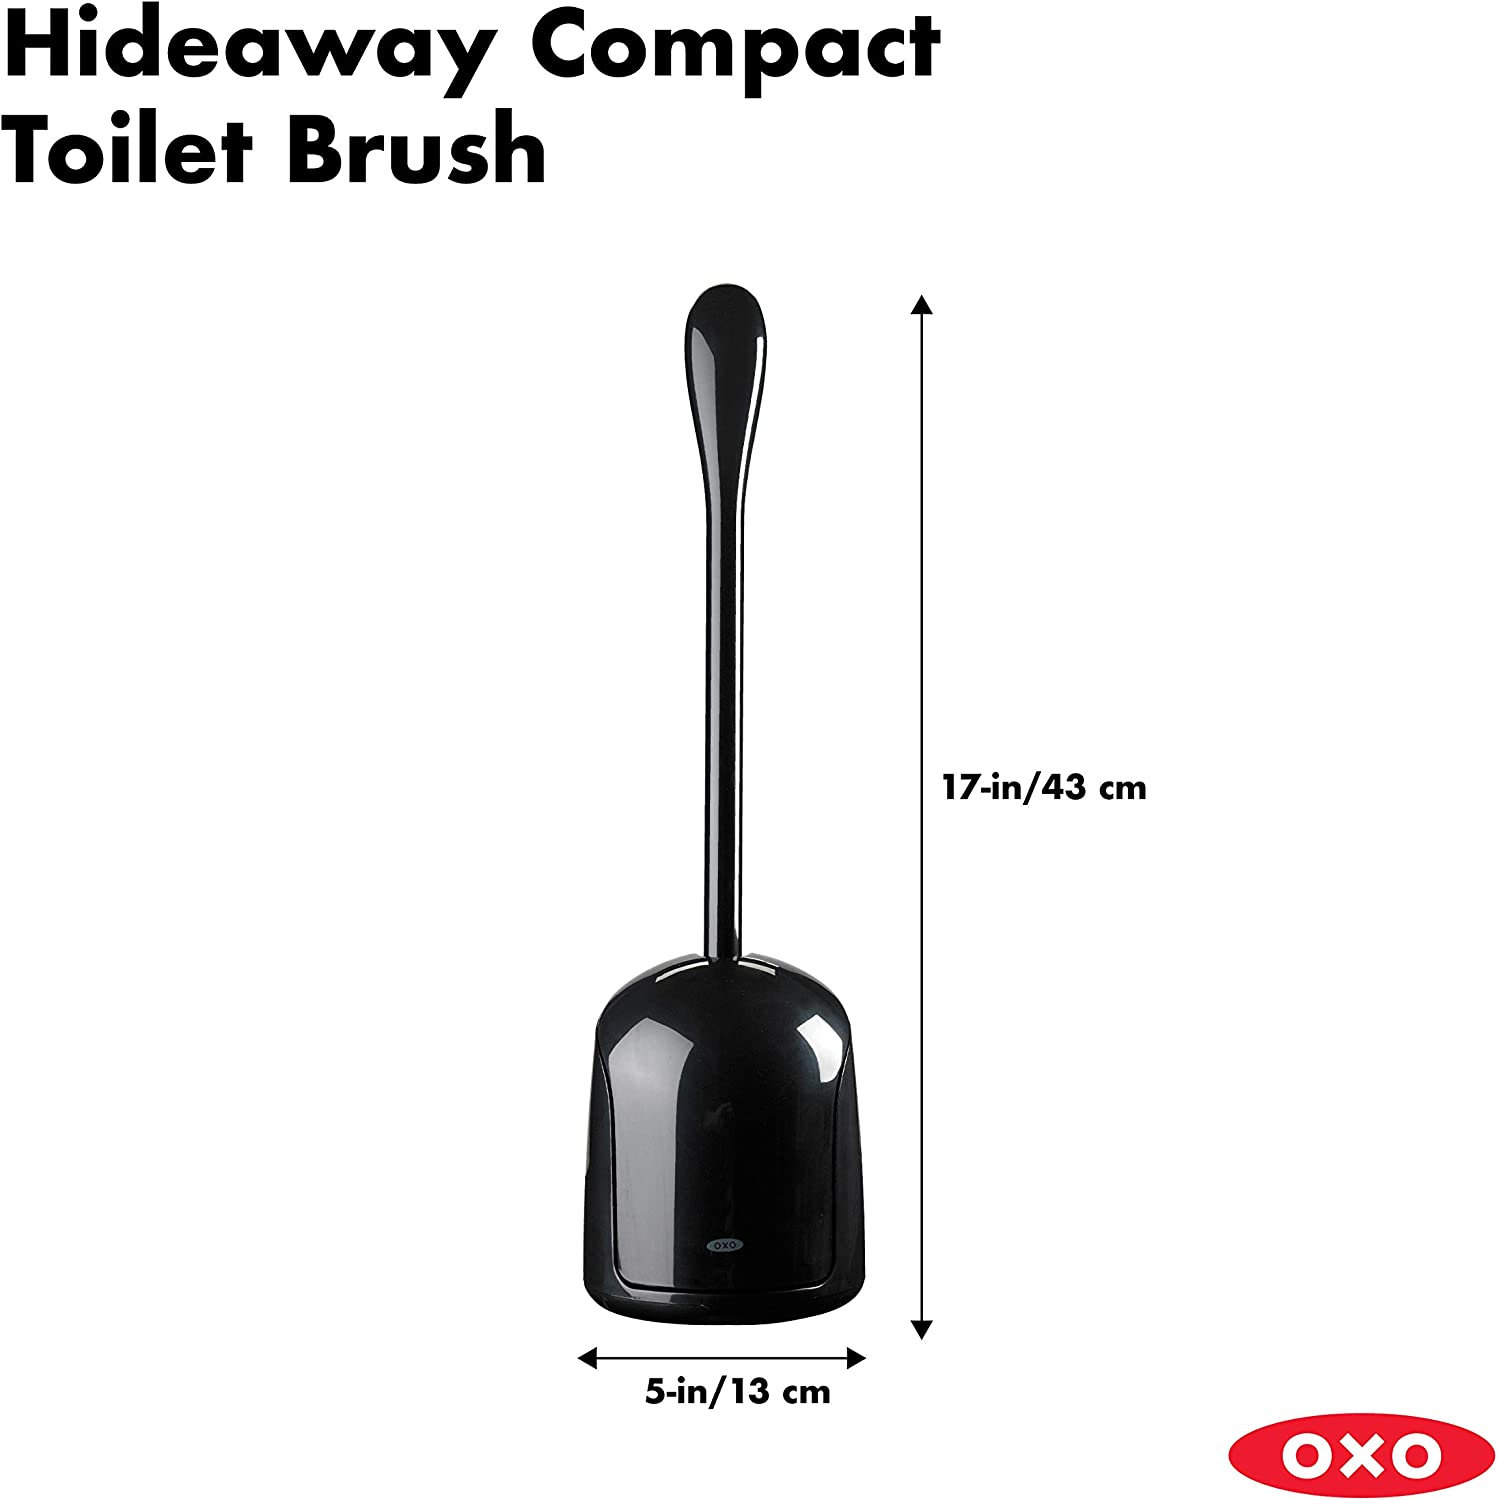 OXO Good Grips 1349480 Hideaway Compact Toilet Brush - Black: Home & Kitchen